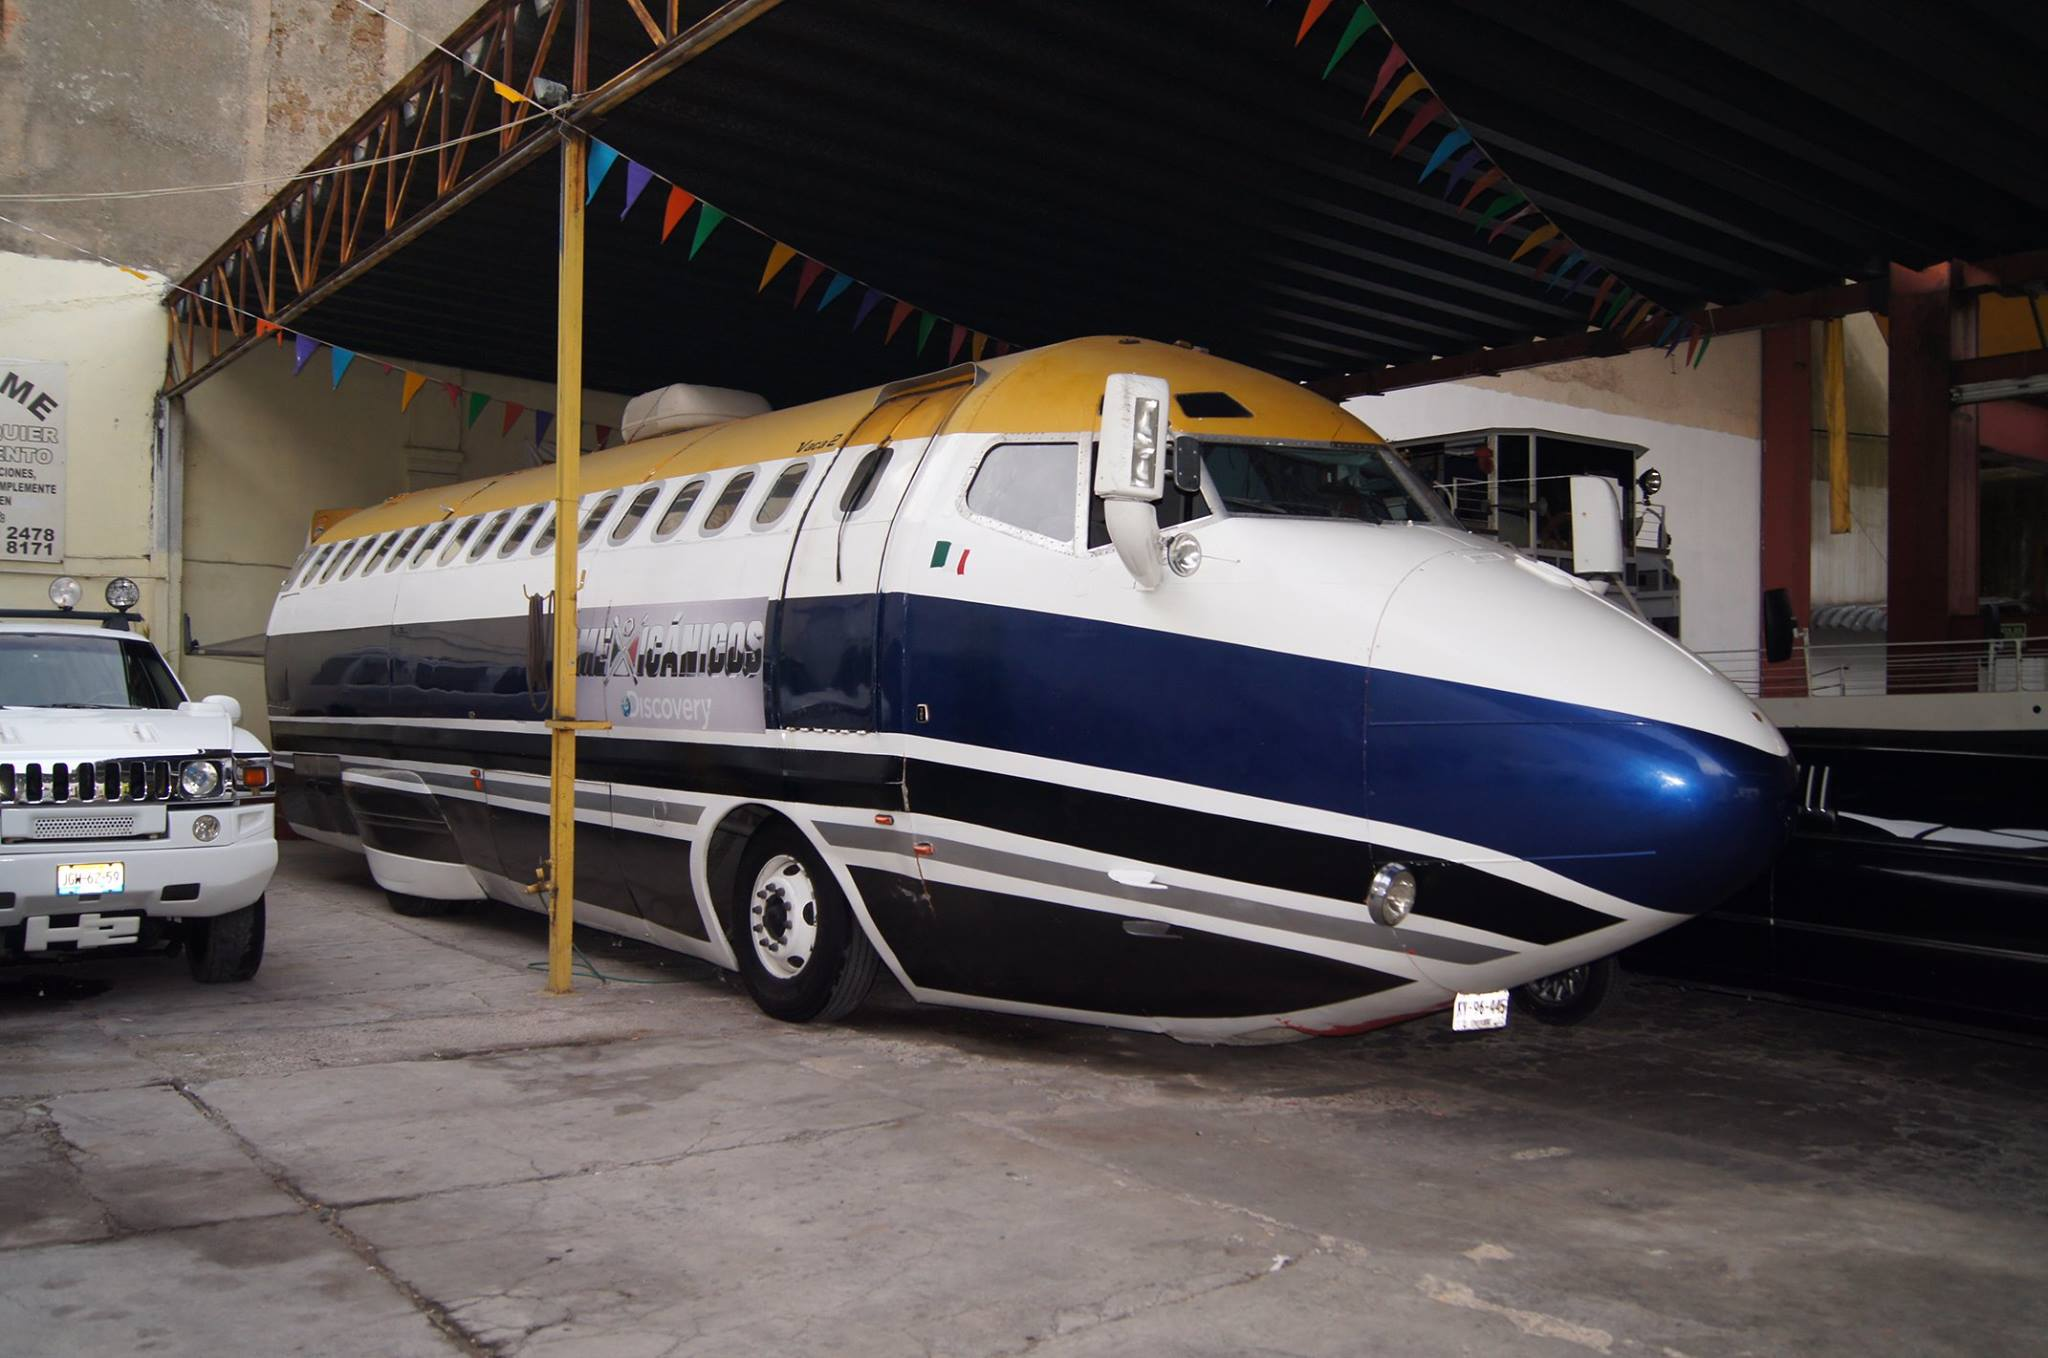 A Boeing 727 Jet Limousine Actually Exists and It's Road-Legal